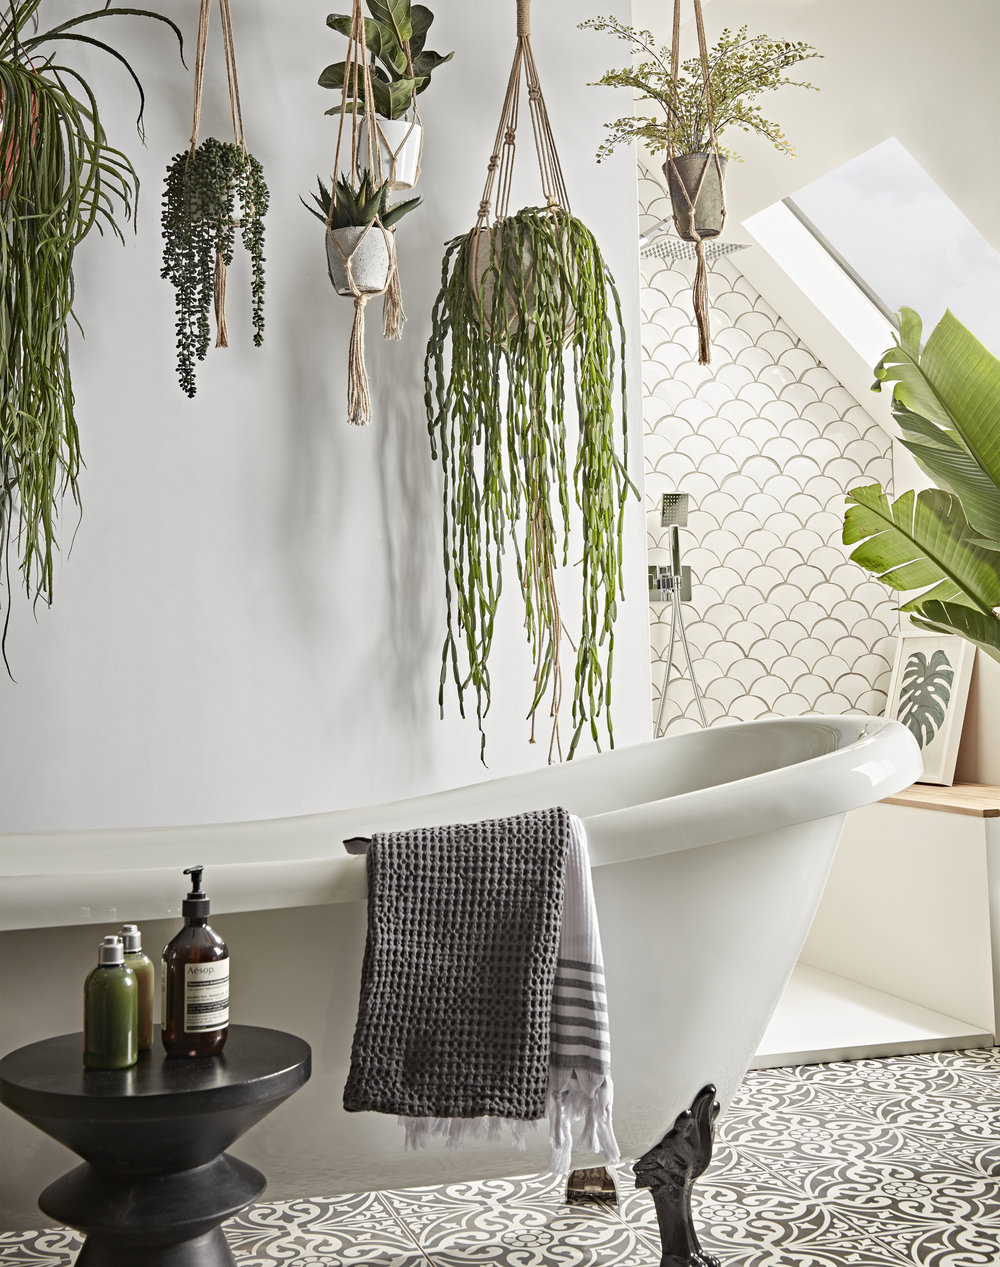 Hanging Gardens - Mimic the lush canopy of a tropical forest and create a spectacular installation in your bathroom, simply by hanging a few planters!